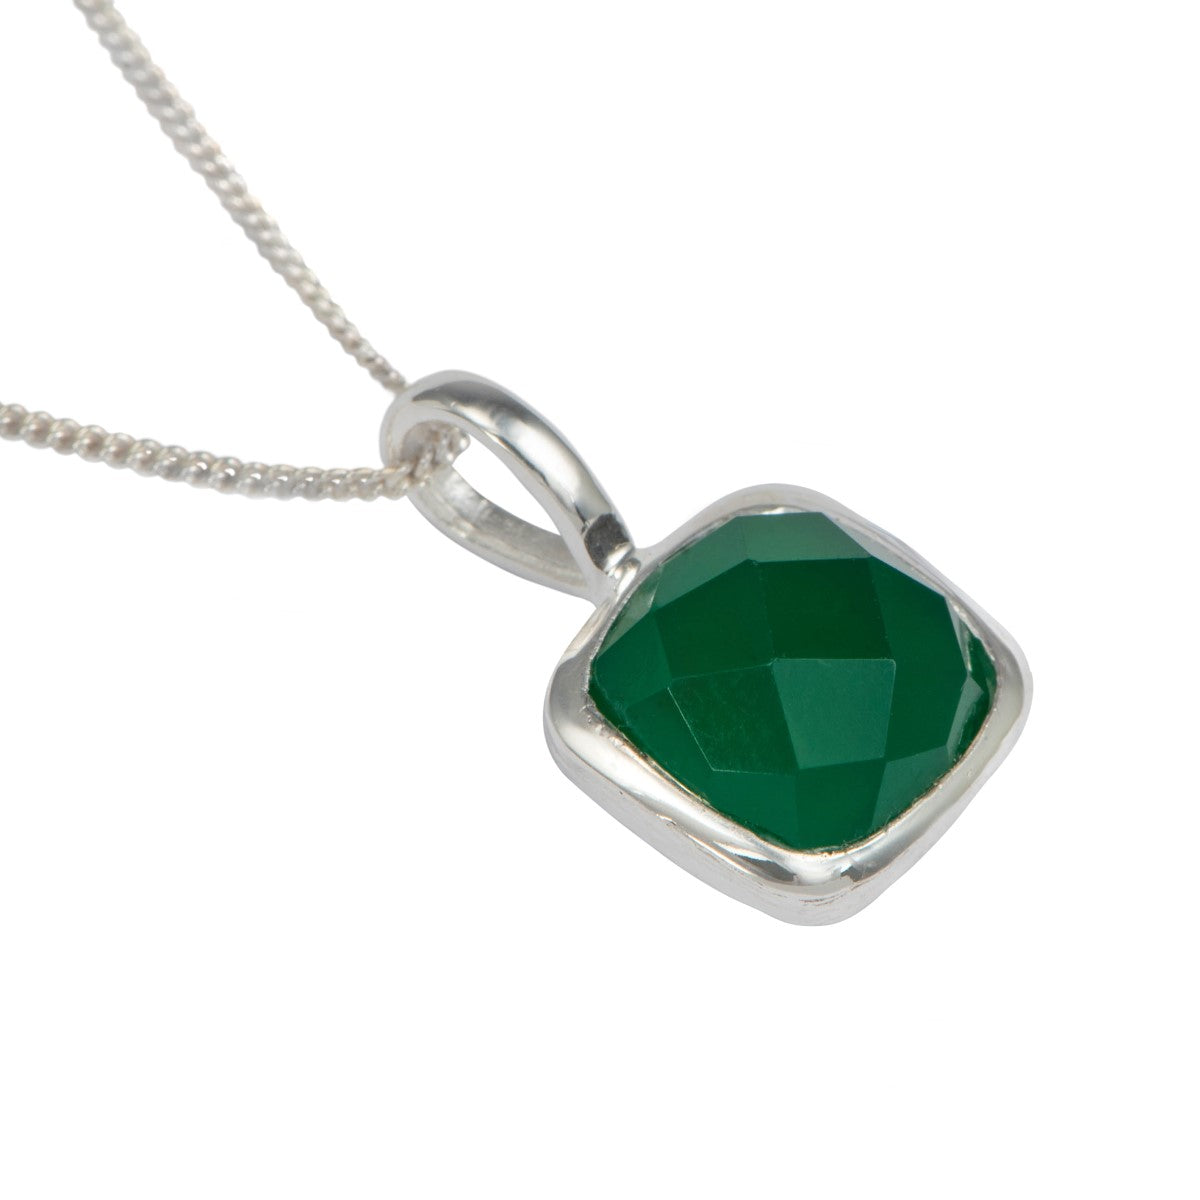 Sterling Silver Pendant Necklace with a Faceted Square Gemstone - Green Onyx